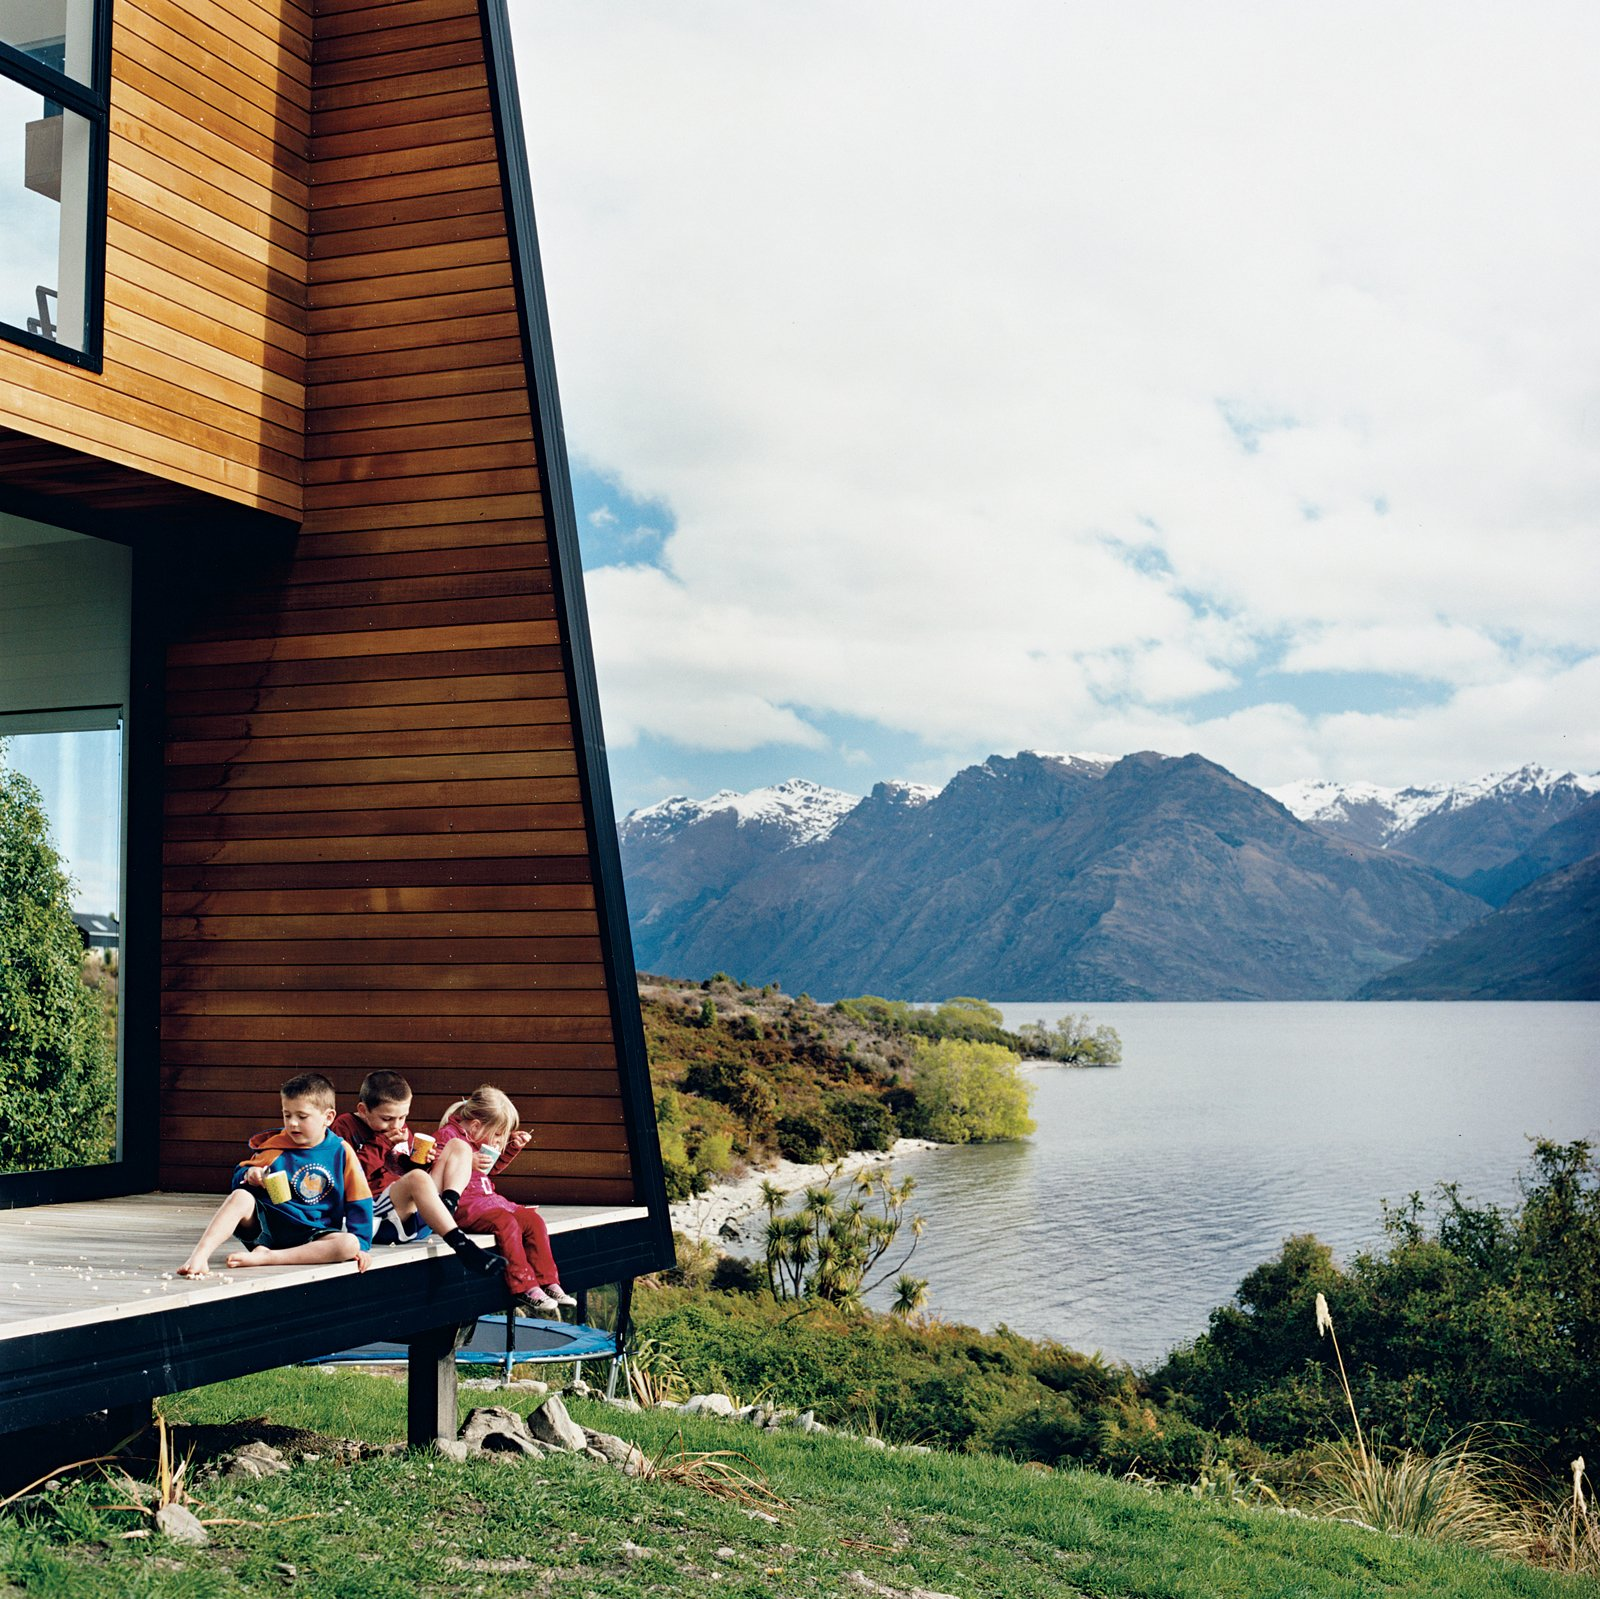 Photo 1 of 12 in Material Spotlight: 11 Hardworking Uses of Western Red Cedar